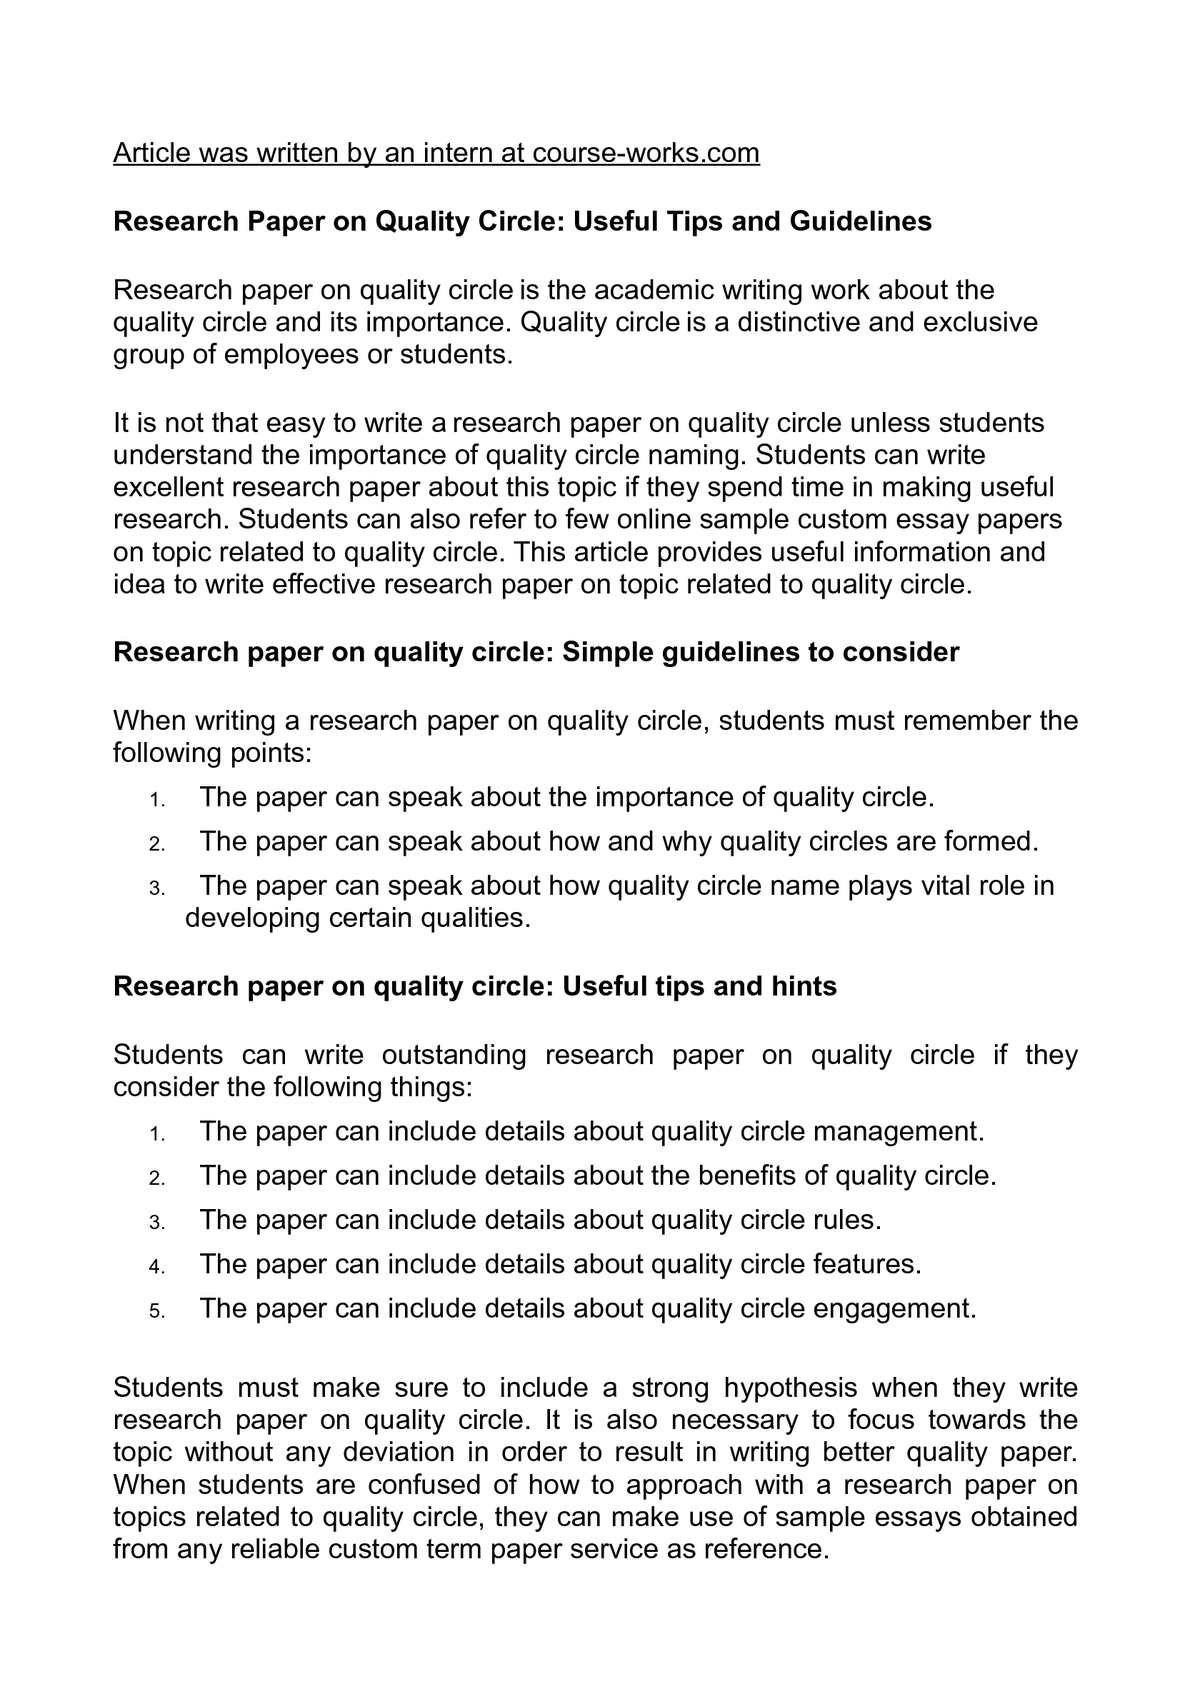 023 Custom Research Paper Awful Term Writer Writing Service Papers Full